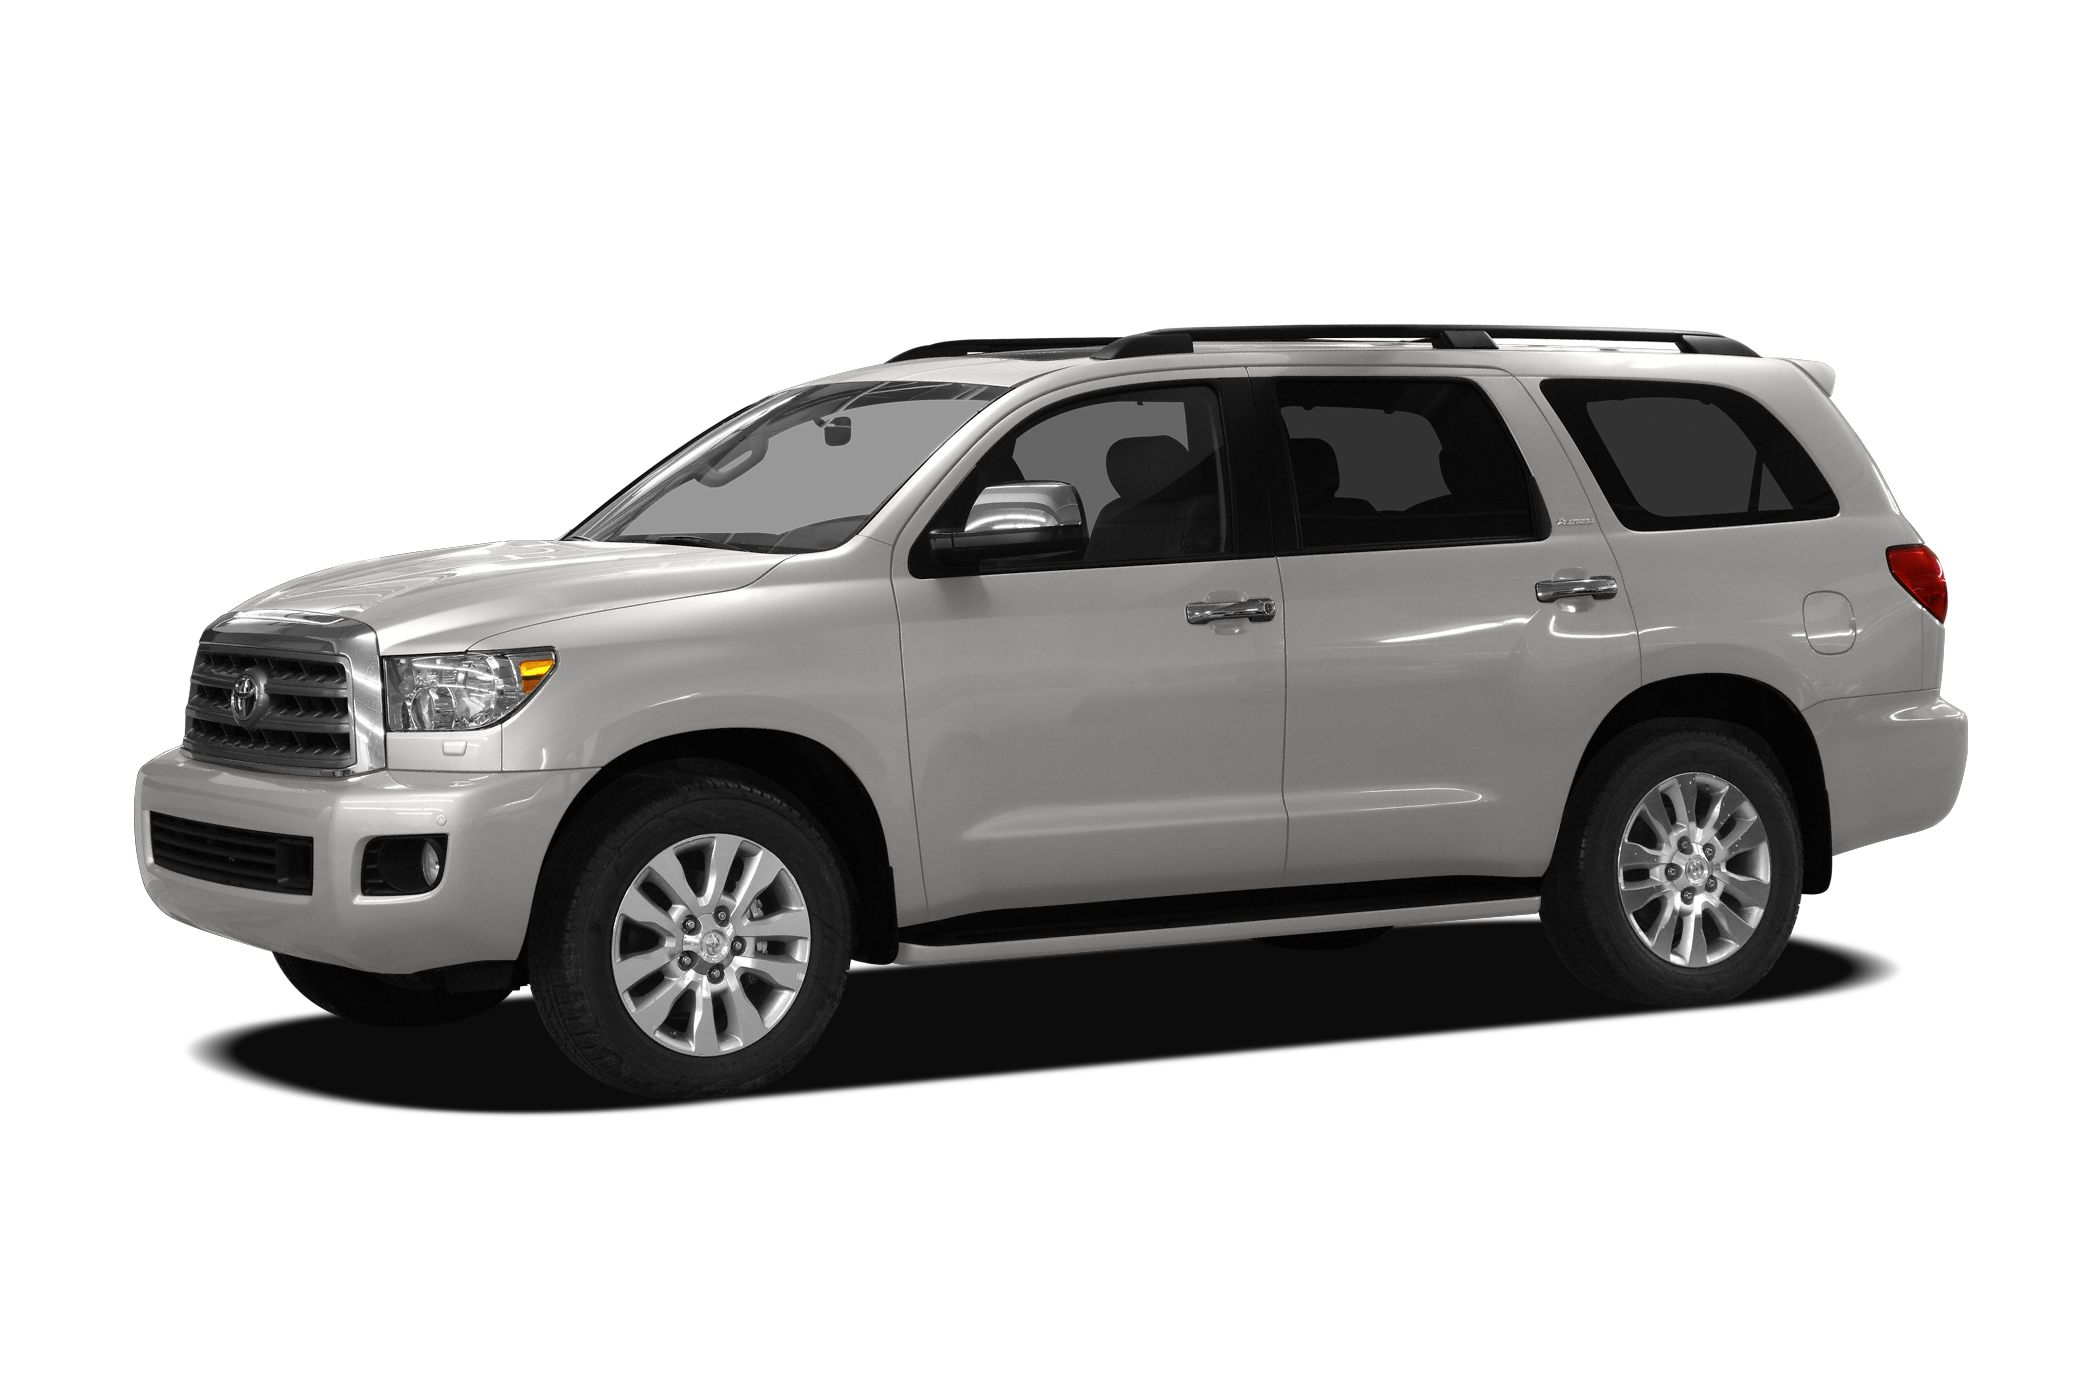 2010 Toyota Sequoia Platinum Miles 167476Color White Stock G80068A VIN 5TDDW5G14AS038437